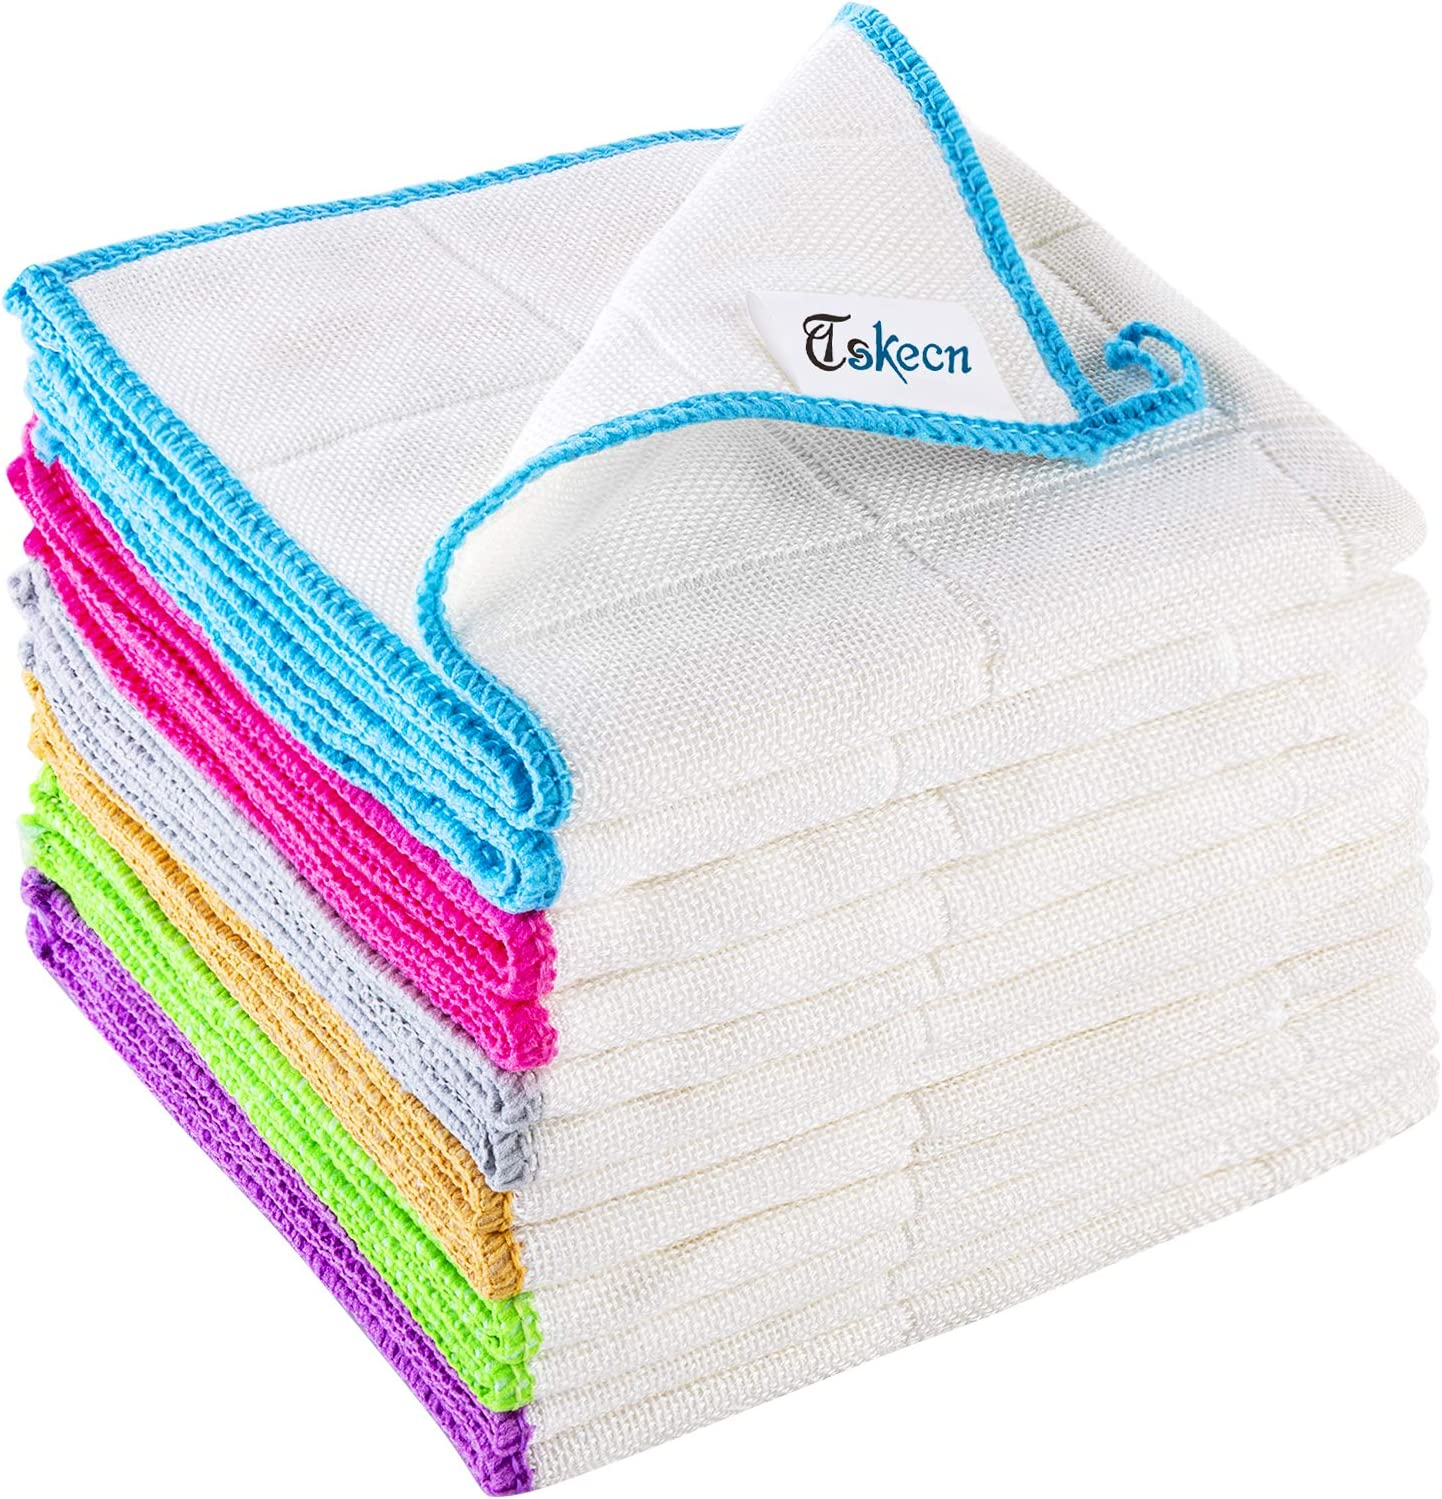 """12 Pcs Bamboo Fiber Cleaning Cloth, Strong Absorbent Soft Kitchen Towels with Hanging Loop, Dishcloths Tea Towel,for House, Kitchen, Car, Window, (12"""" x 12"""")"""